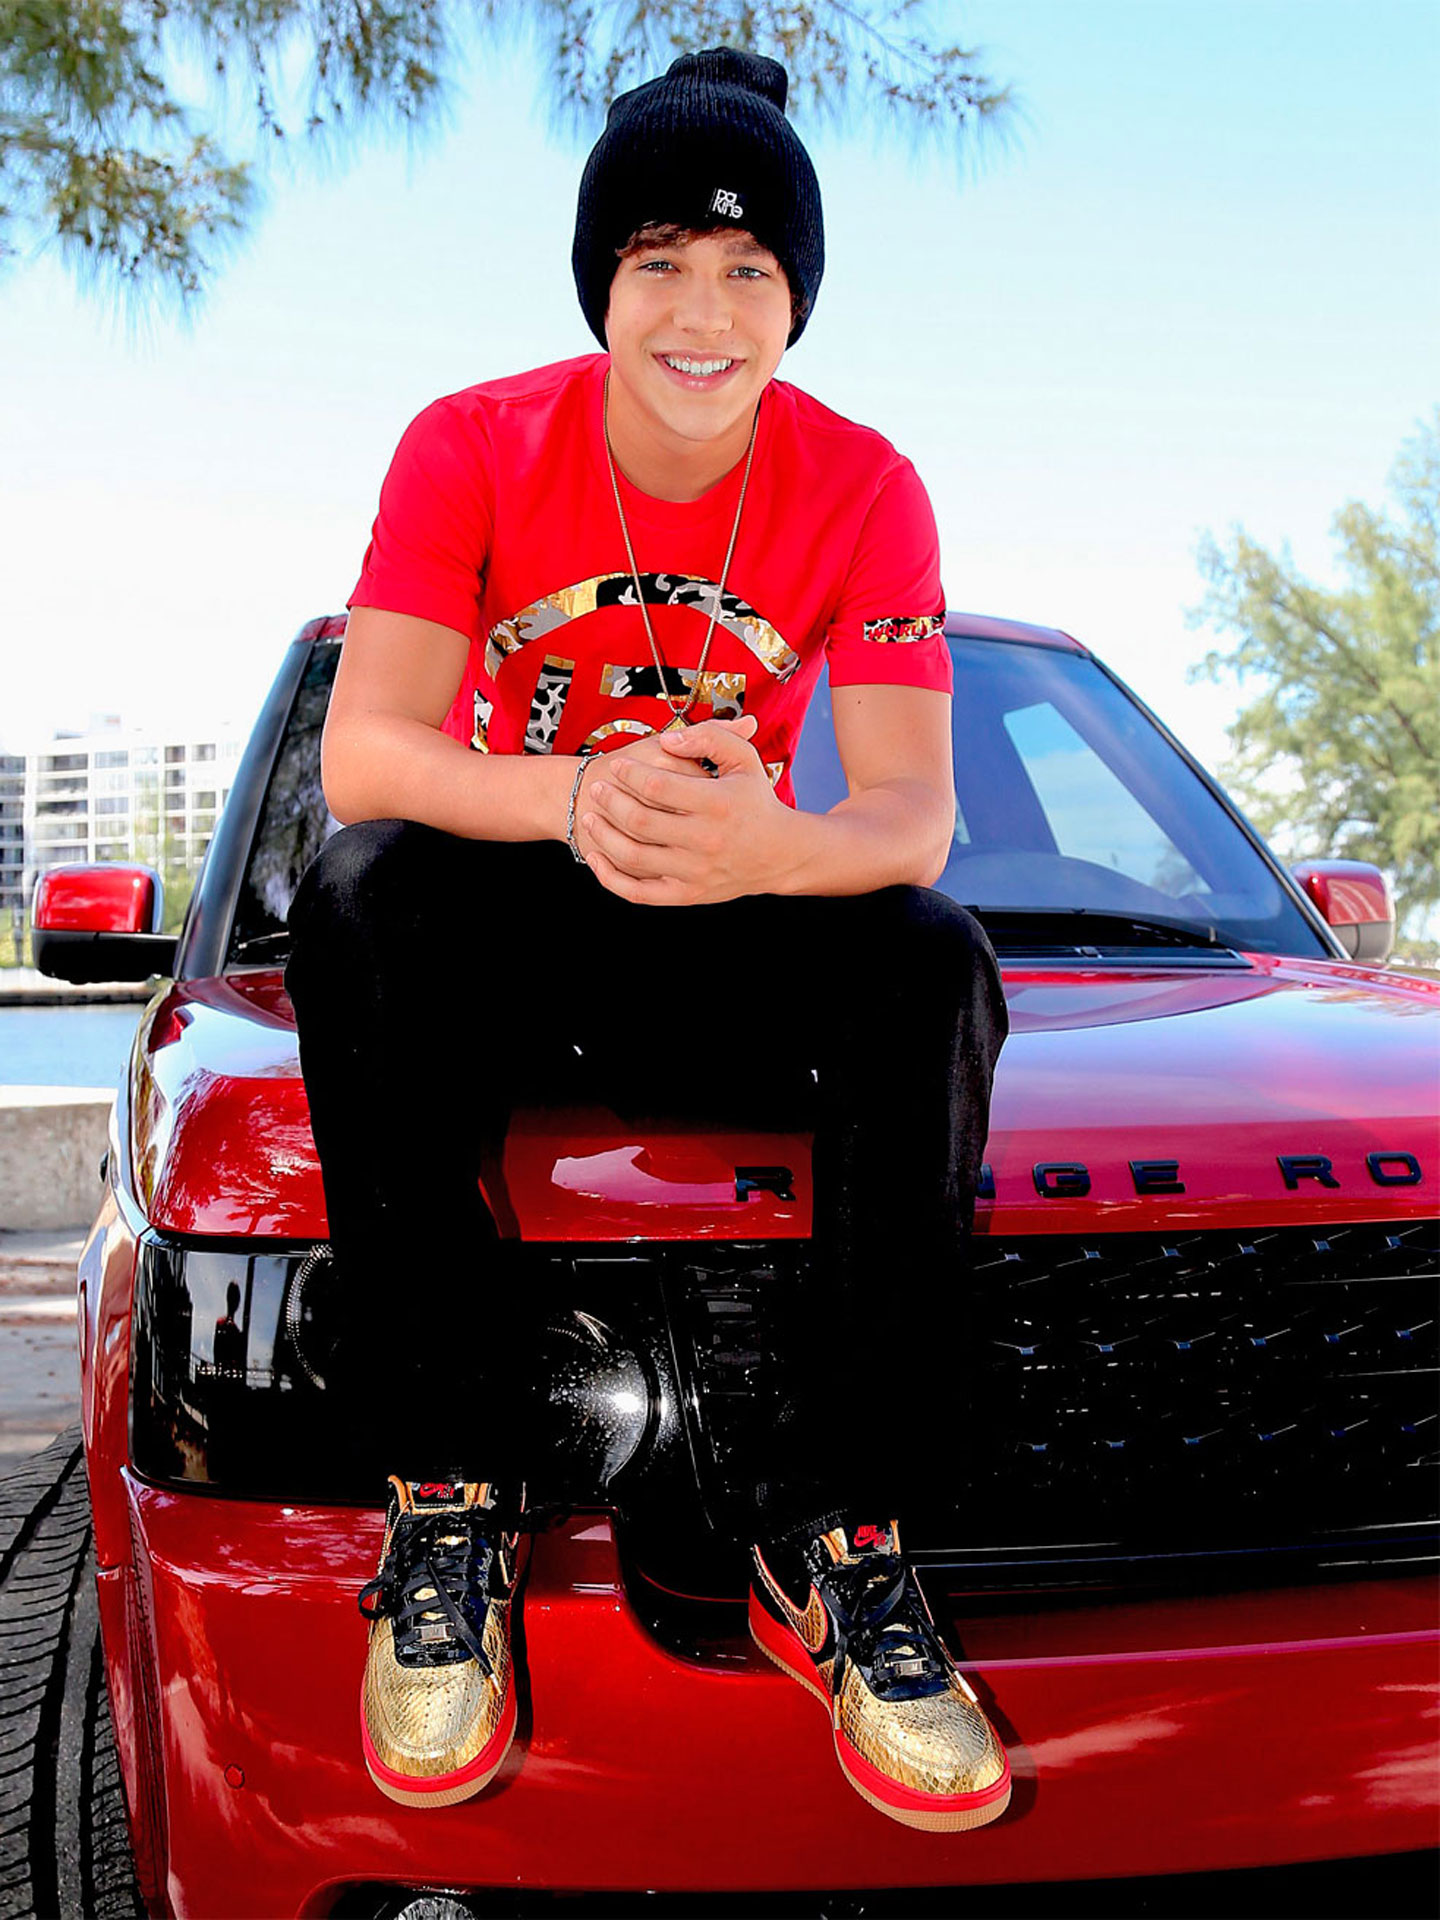 Relationship dating austin mahone games